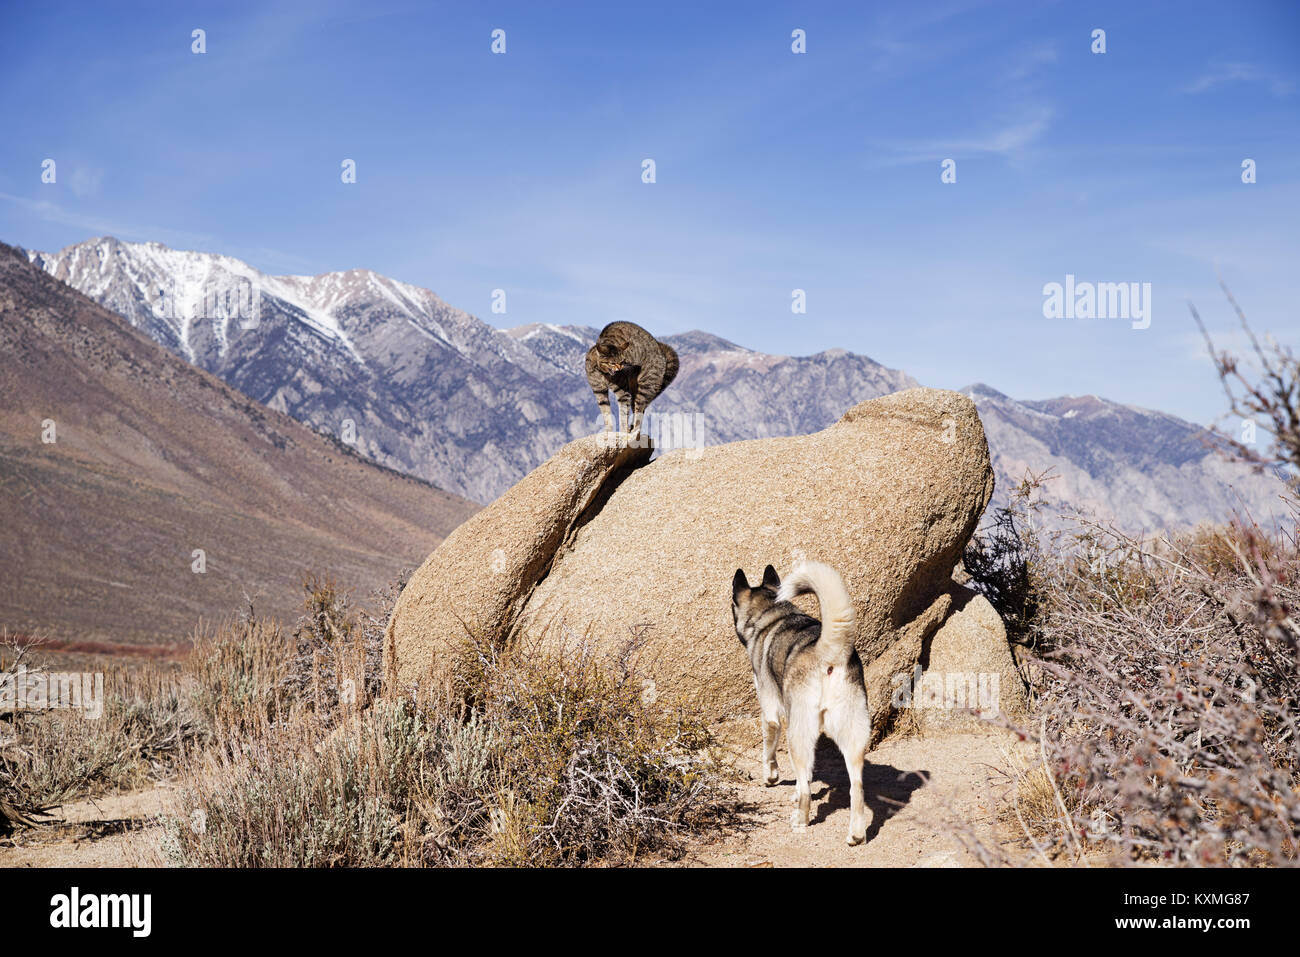 a cat on a rock puffs up and hisses at a dog below it in the desert - Stock Image